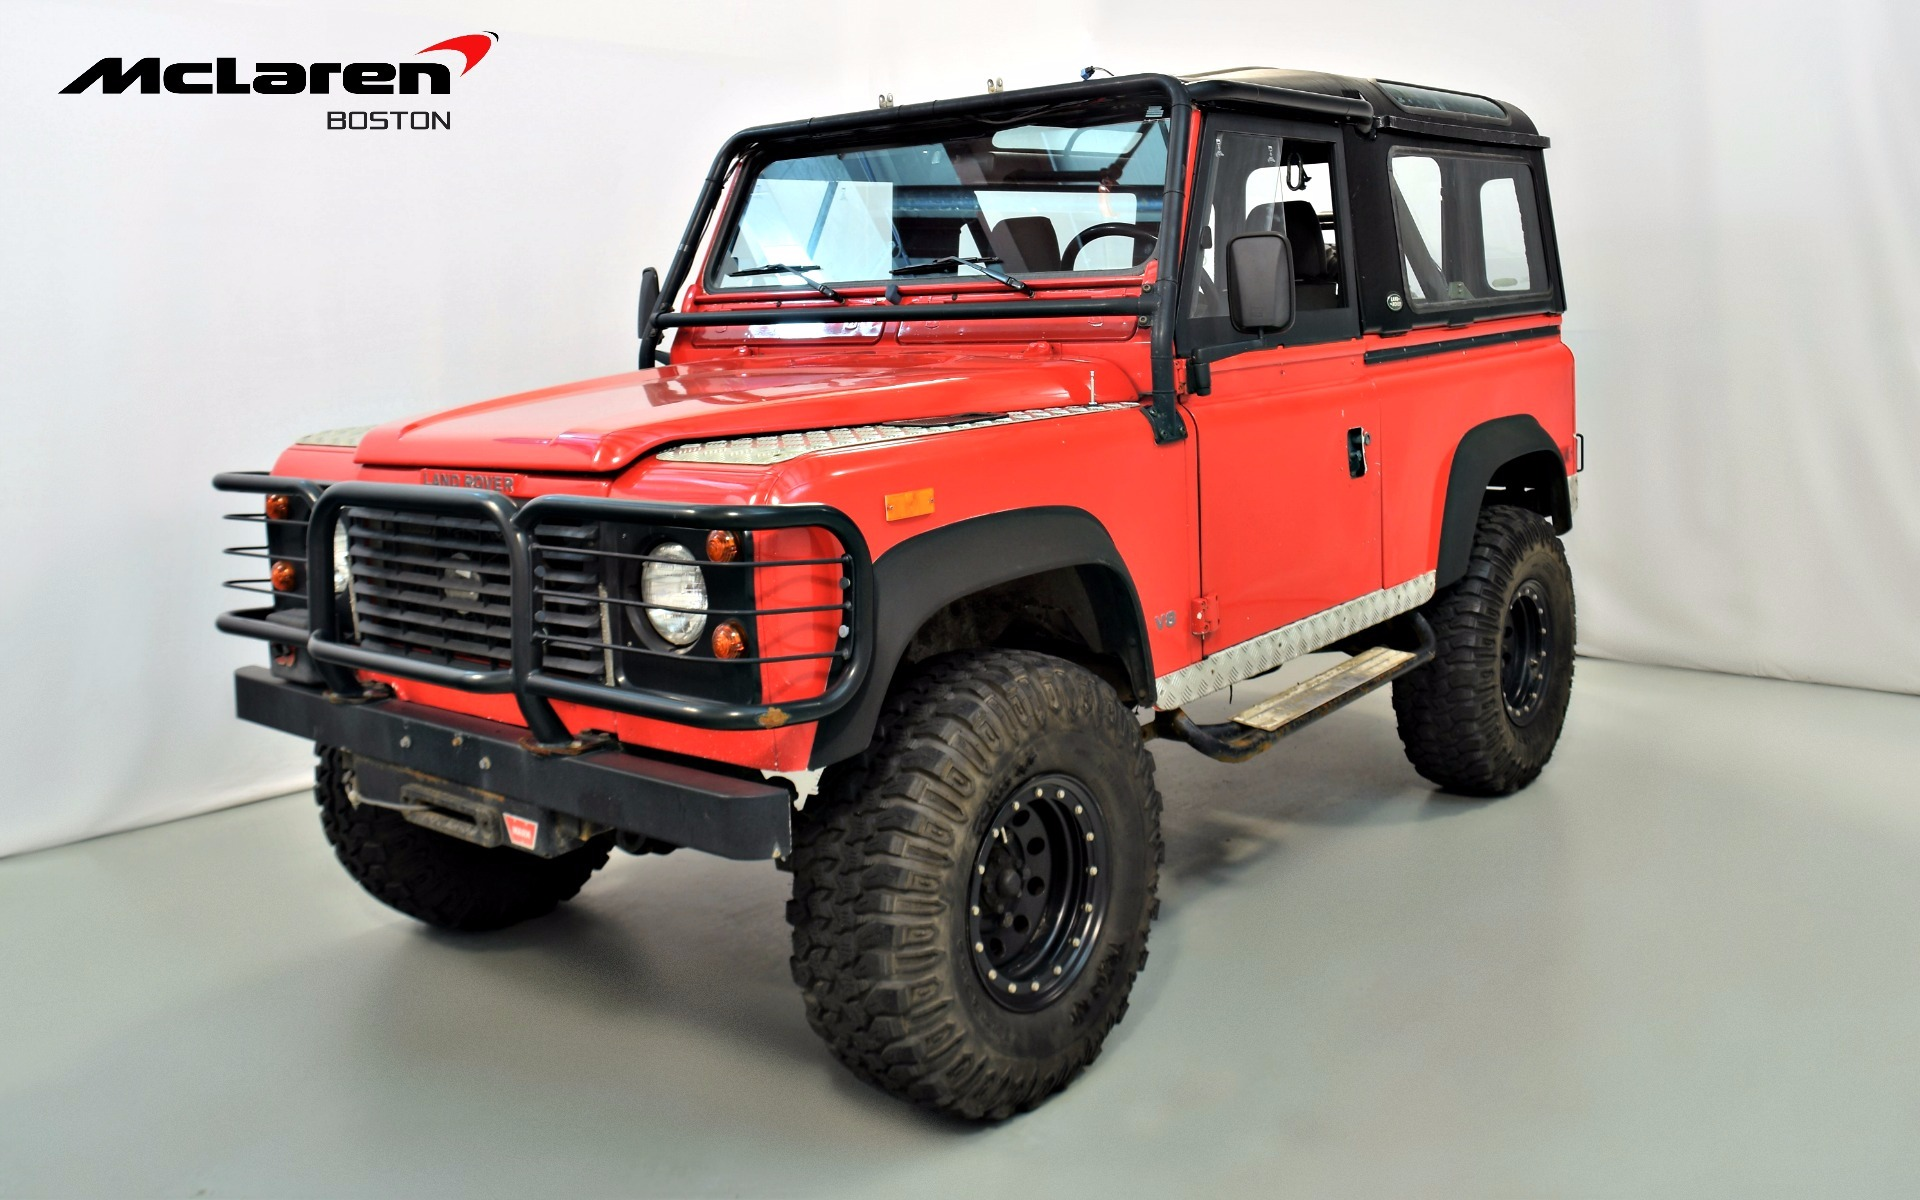 1994 land rover defender 90 for sale in norwell ma 943905 mclaren boston. Black Bedroom Furniture Sets. Home Design Ideas